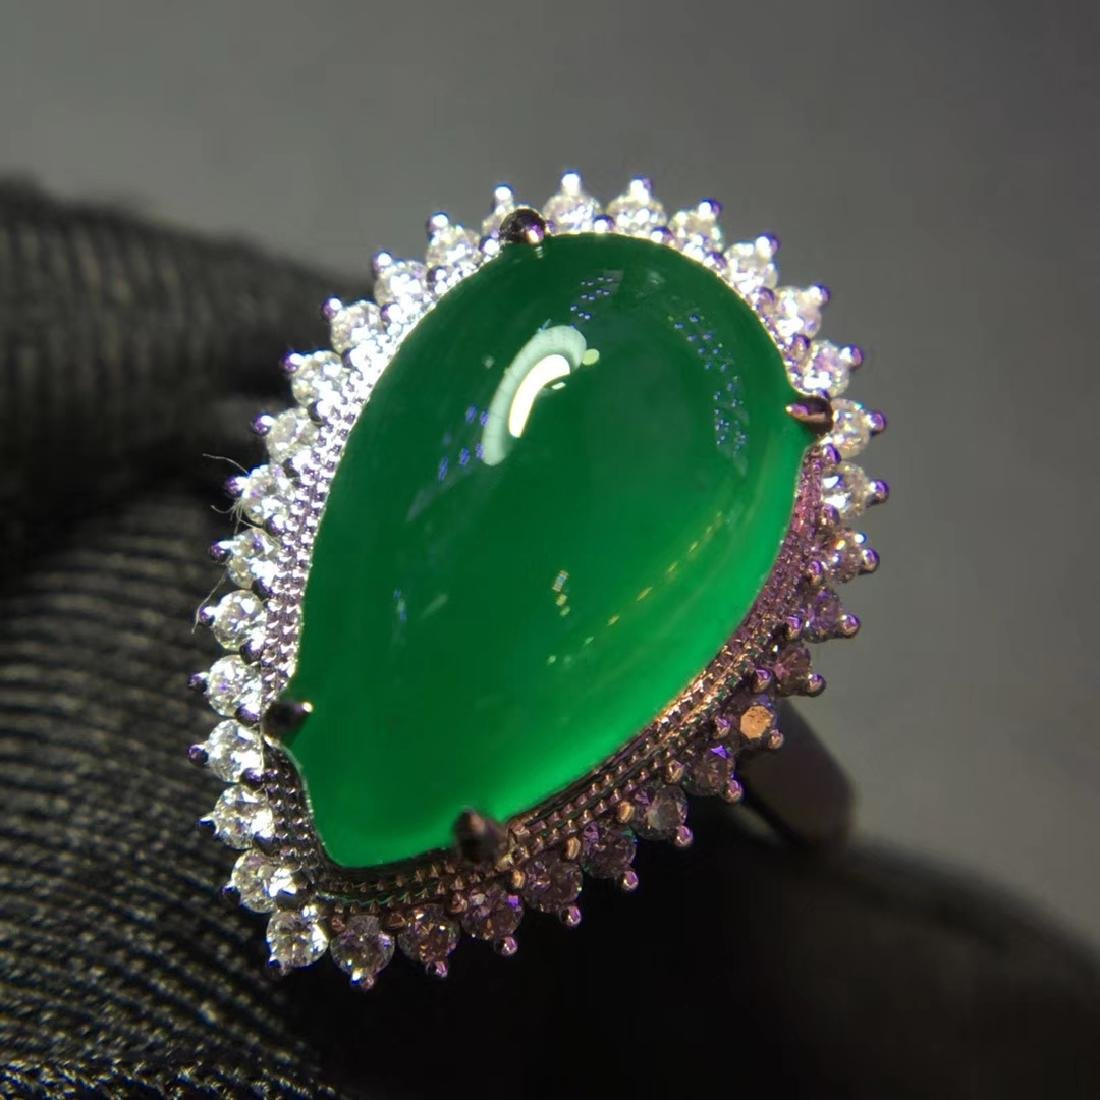 5ct Emerald Ring in 18kt Gold - 4